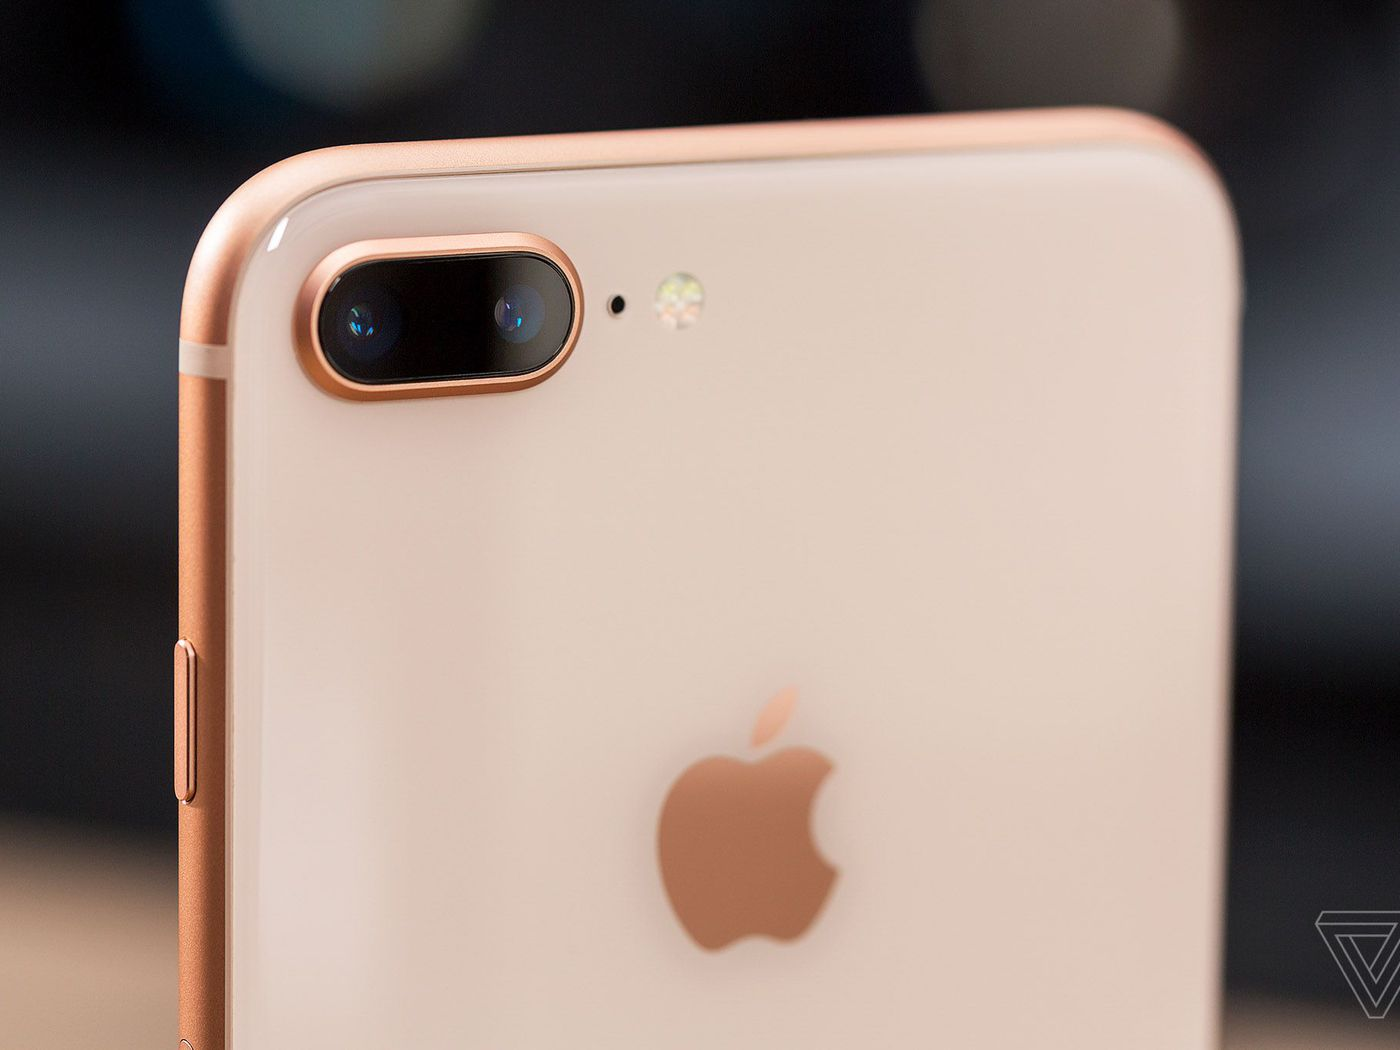 What if the iPhone 8 Plus is better than the iPhone X? - The